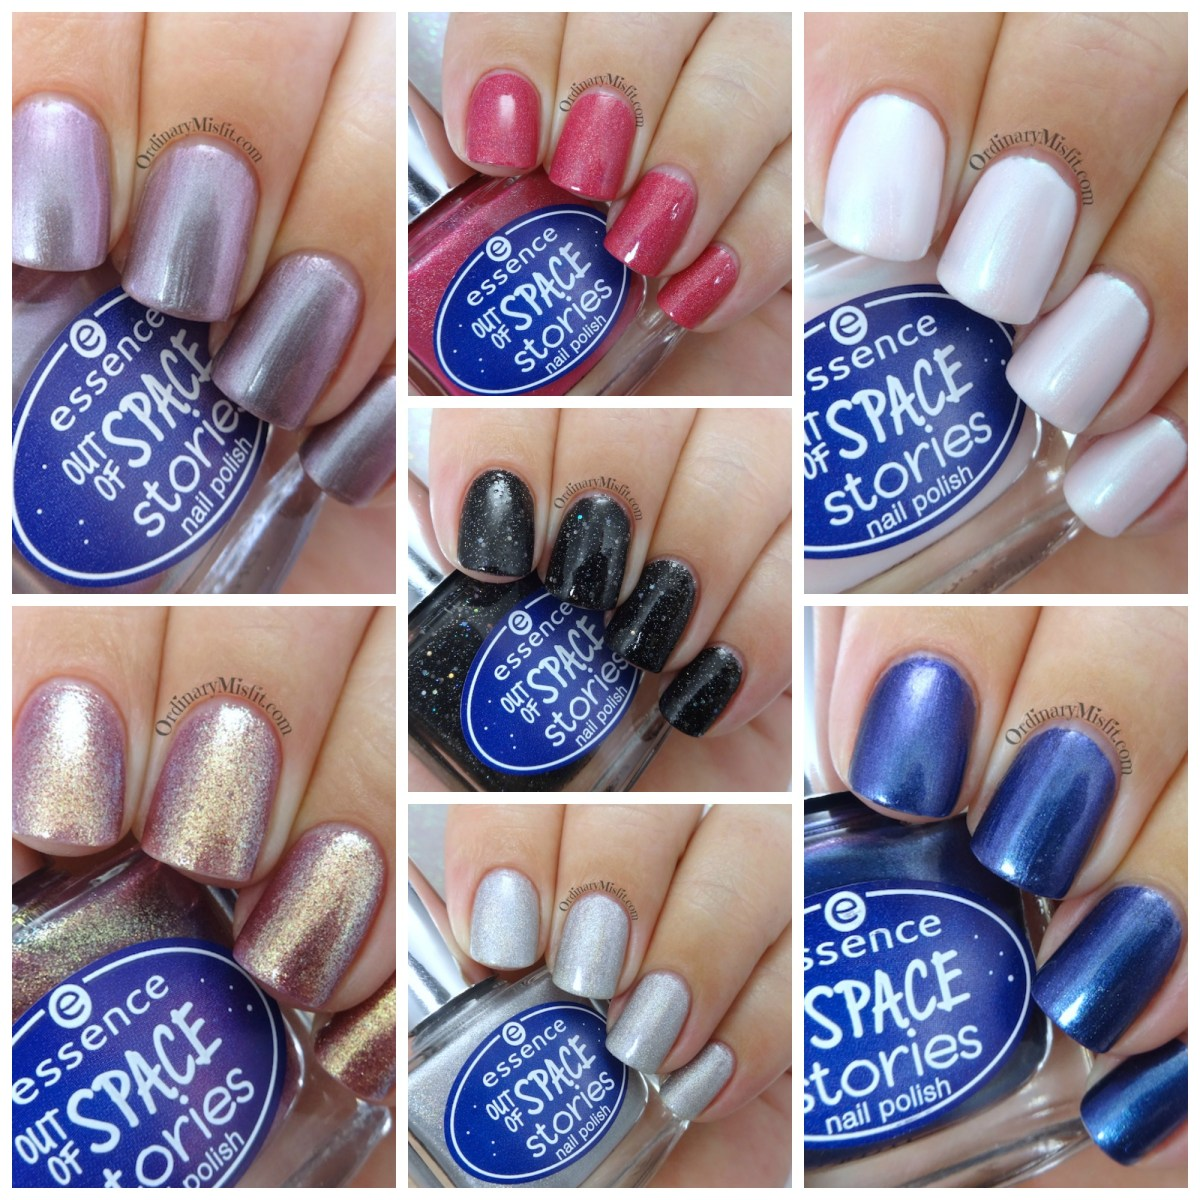 Essence - Out of space stories collection